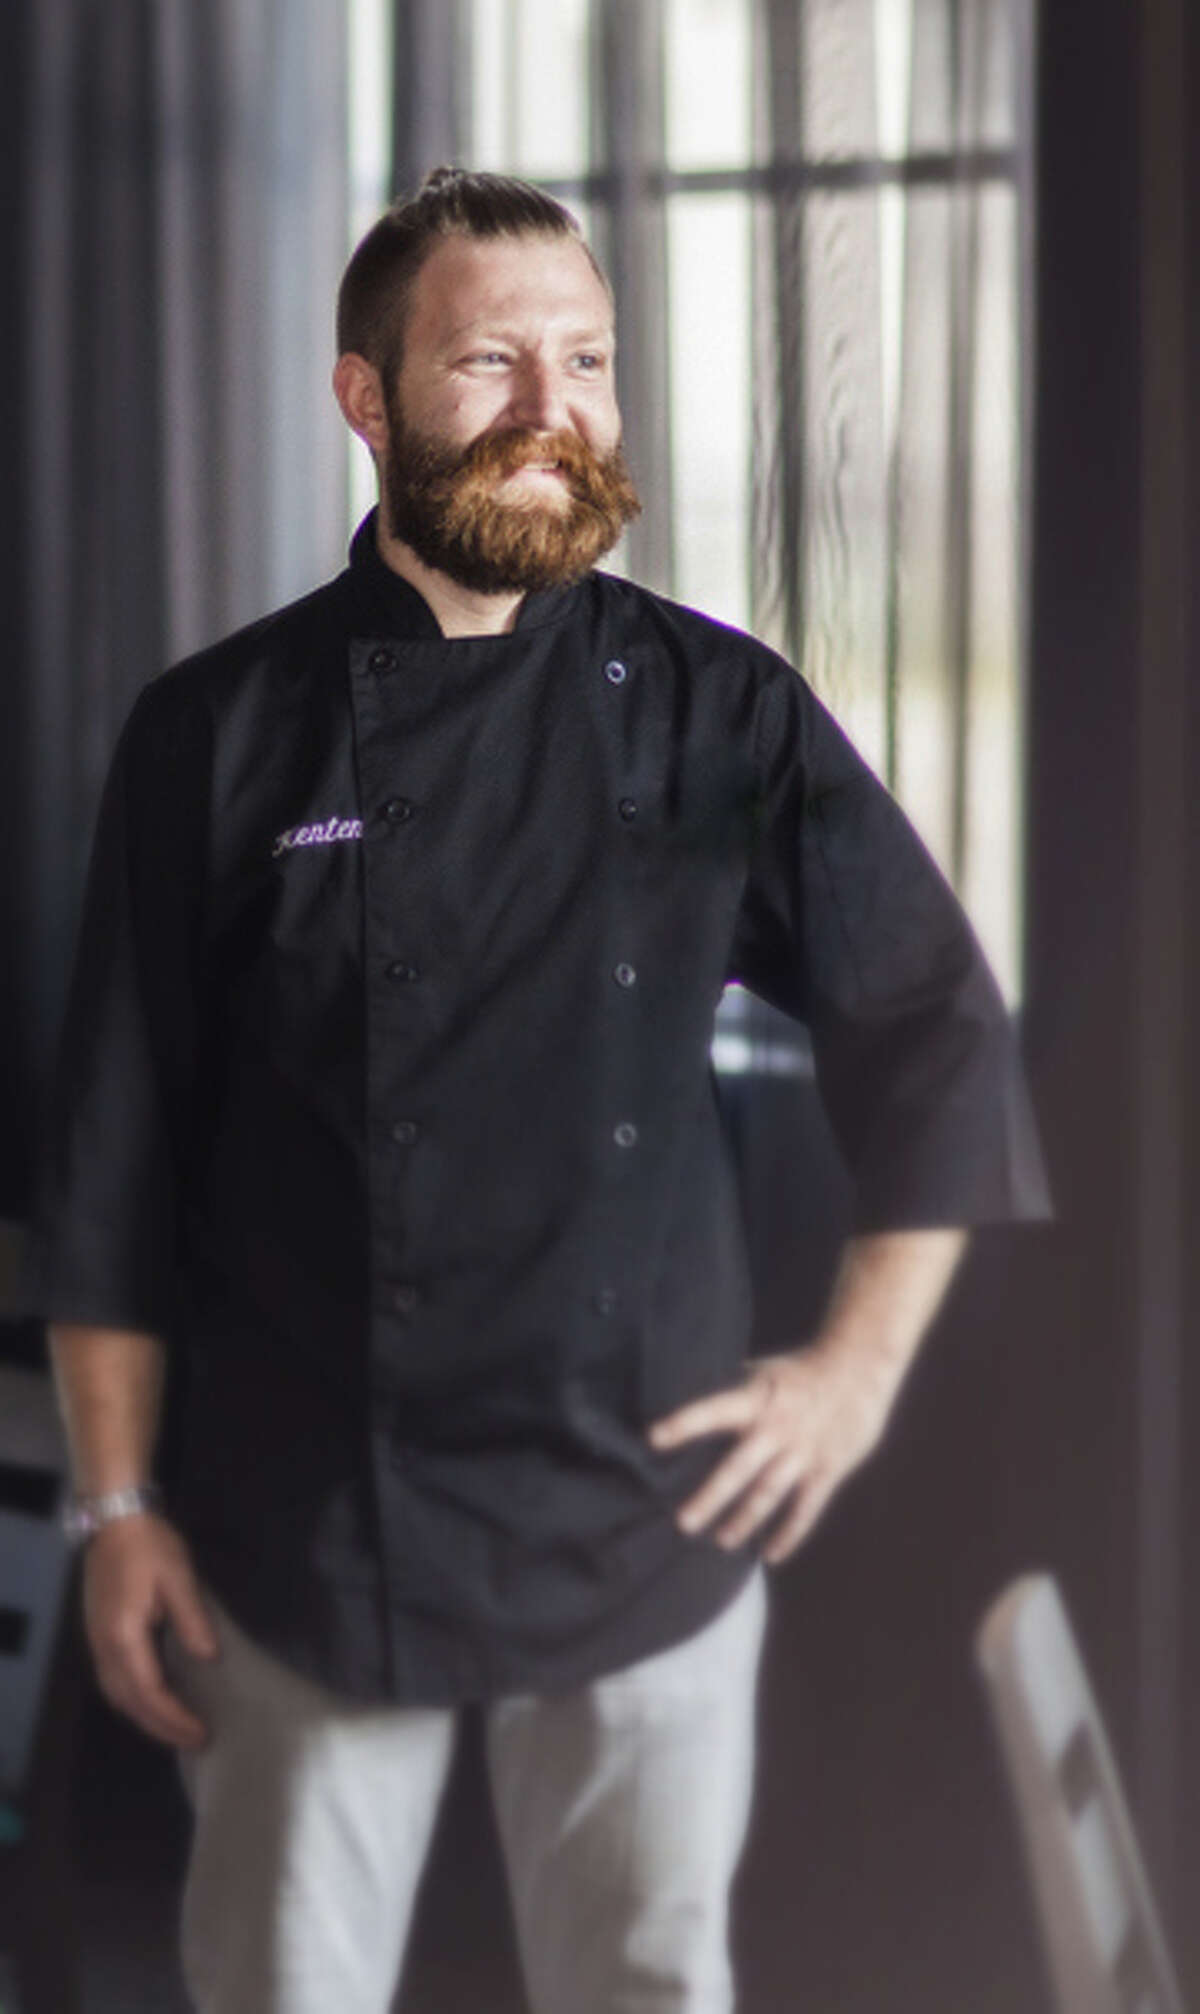 Kenten Marin is the new executive chef of Shade restaurant in the Heights.